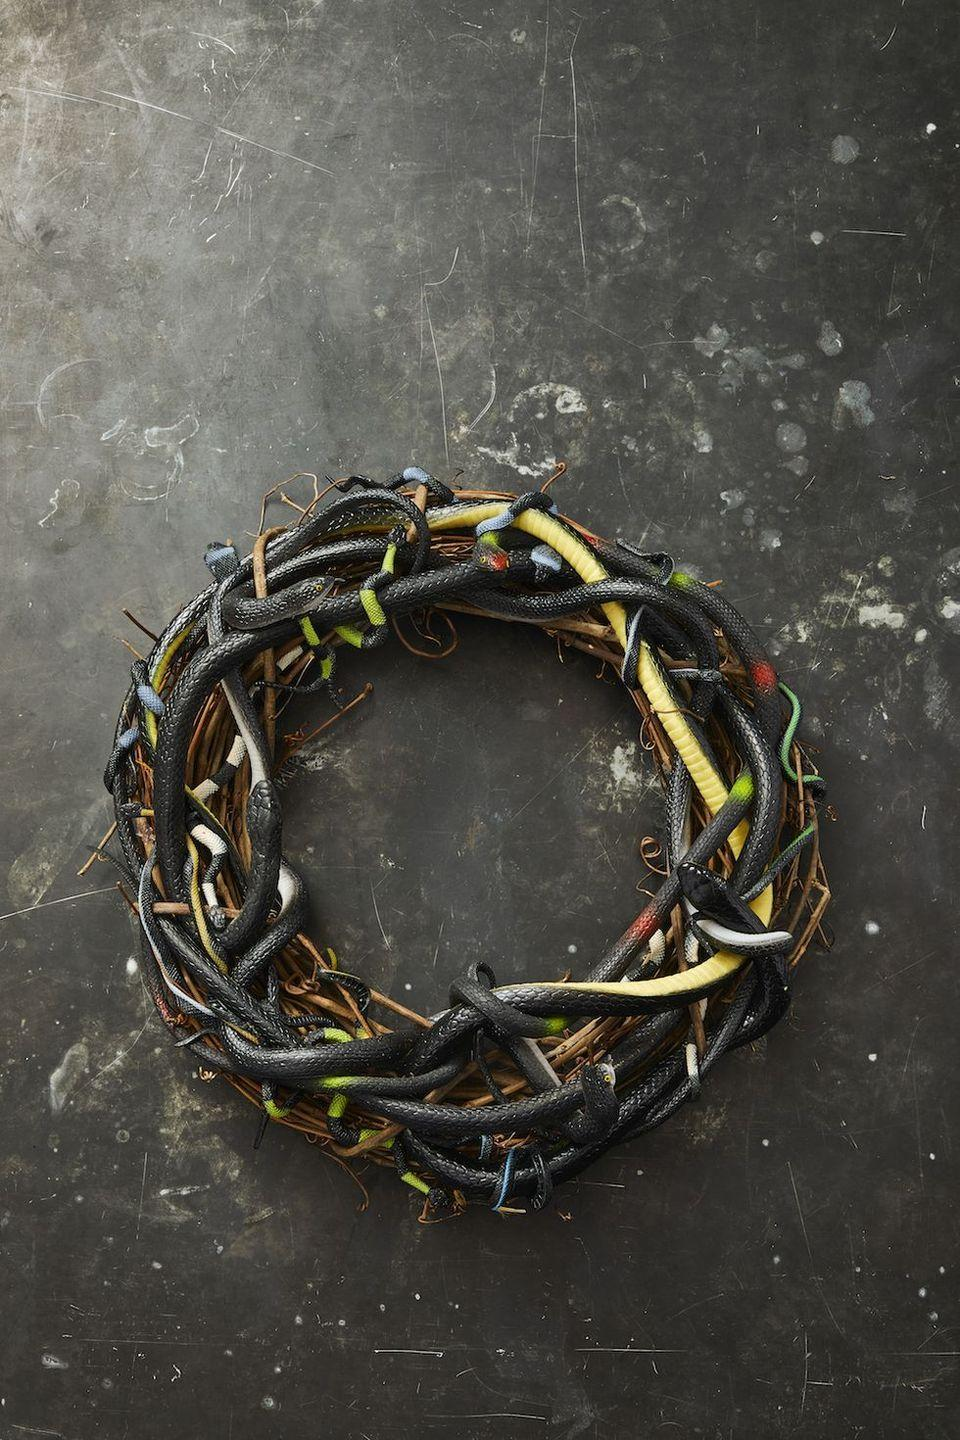 """<p>A wreath can serve as the perfect foundation for a centerpiece. Guests will certainly freak out over this twig design that's decked out in plastic snakes. </p><p><a class=""""link rapid-noclick-resp"""" href=""""https://go.redirectingat.com?id=74968X1596630&url=https%3A%2F%2Fwww.michaels.com%2F18in-grapevine-wreath-by-ashland%2F10375477.html&sref=https%3A%2F%2Fwww.goodhousekeeping.com%2Fholidays%2Fhalloween-ideas%2Fg33437890%2Fhalloween-table-decorations-centerpieces%2F"""" rel=""""nofollow noopener"""" target=""""_blank"""" data-ylk=""""slk:SHOP GRAPEVINE WREATH"""">SHOP GRAPEVINE WREATH</a></p>"""